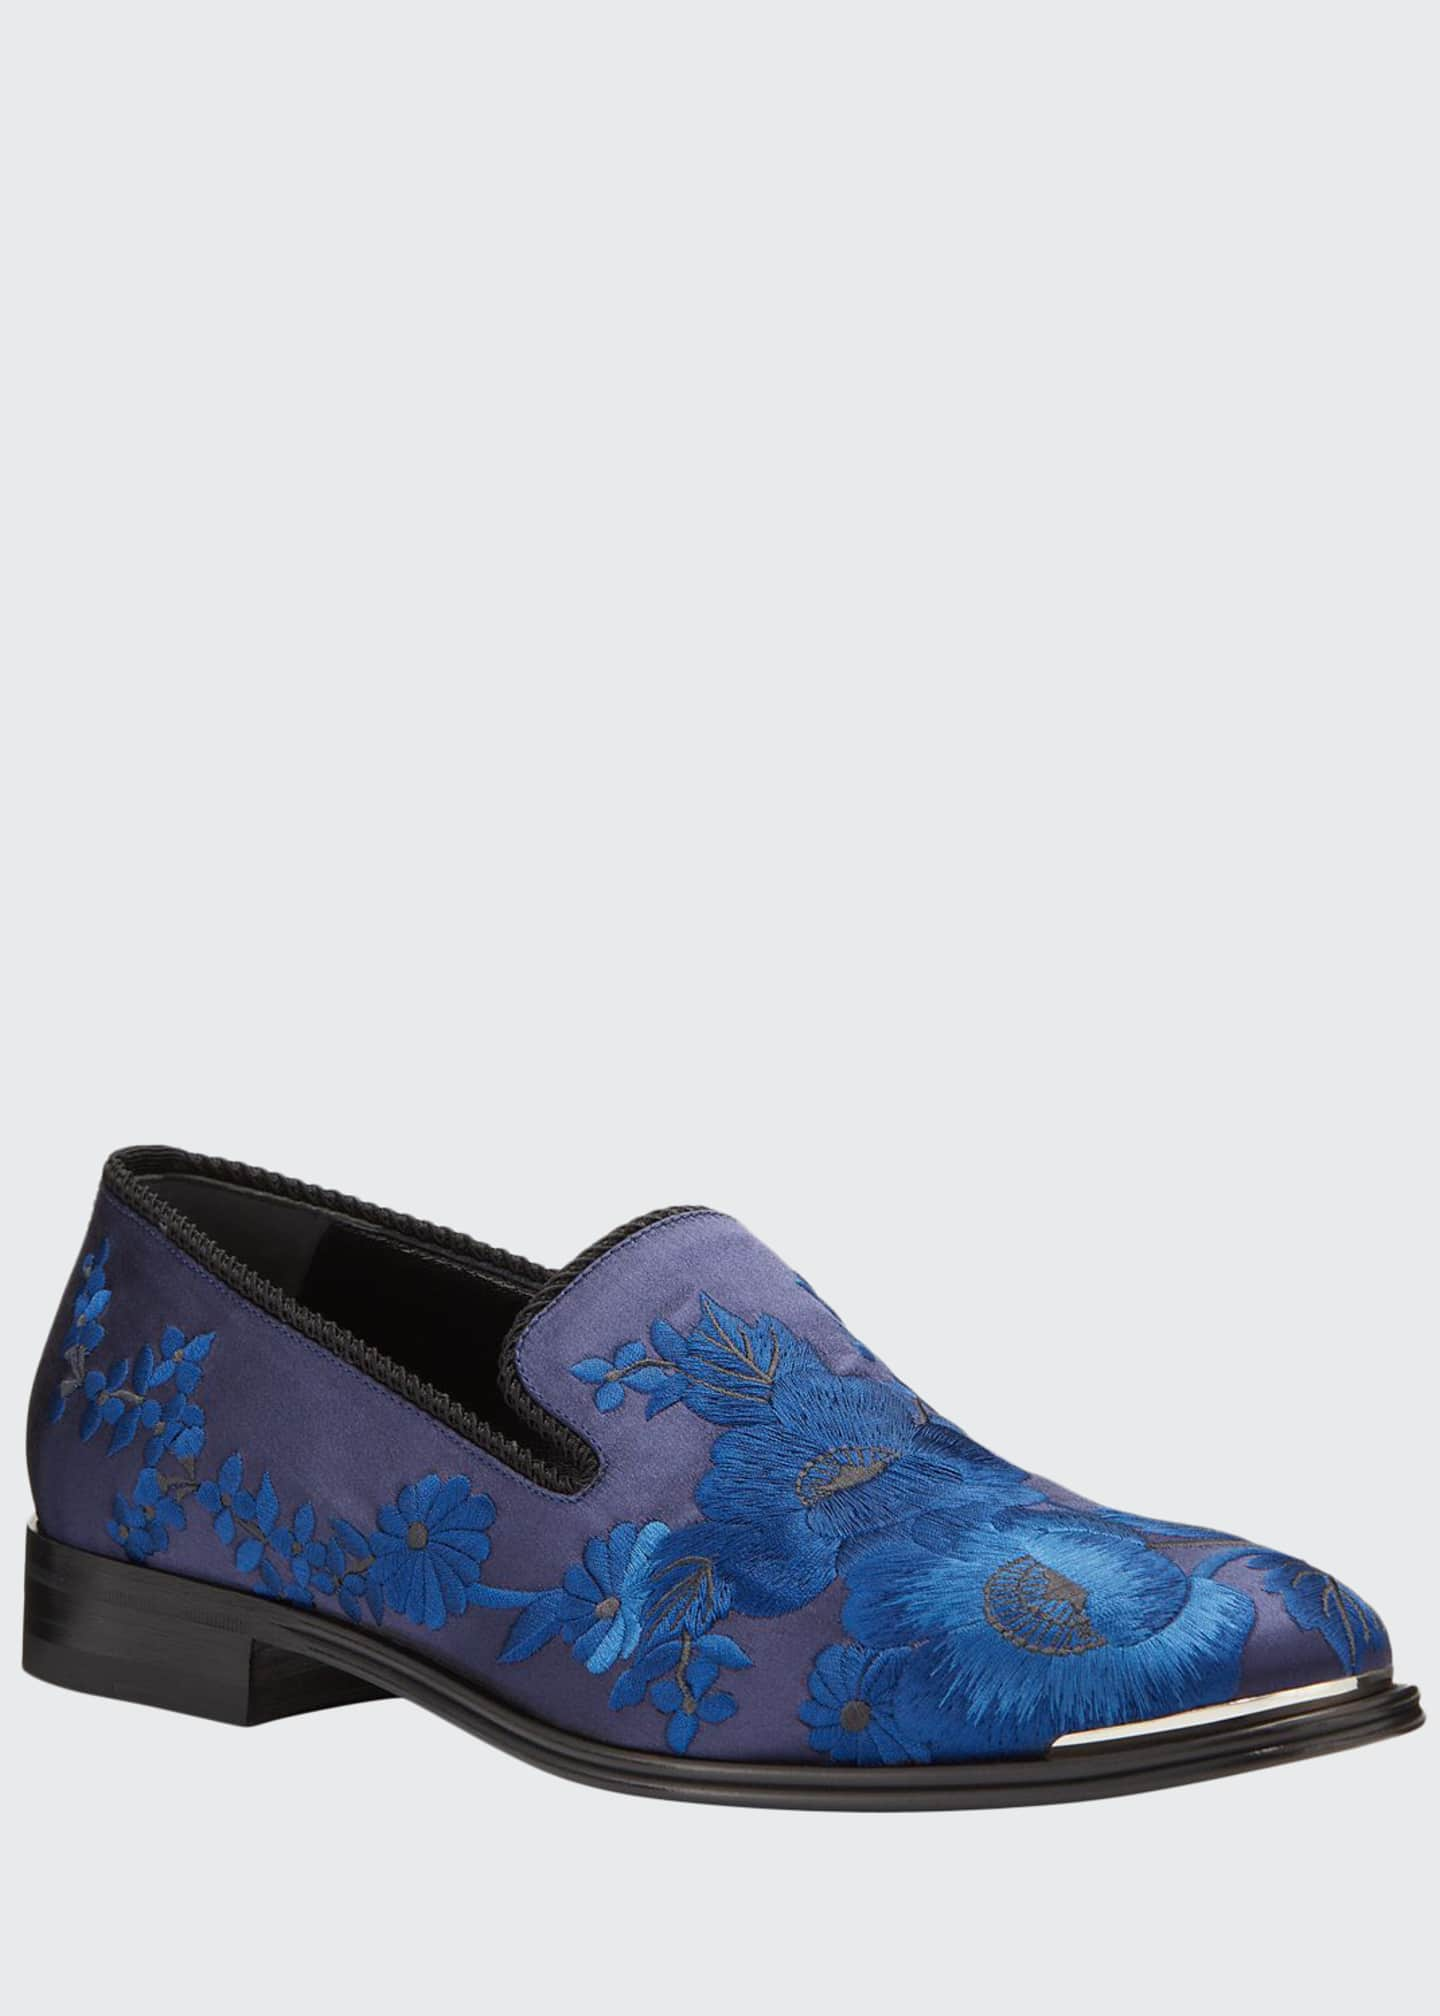 Image 1 of 4: Men's Embroidered Satin Formal Slip-On Loafers